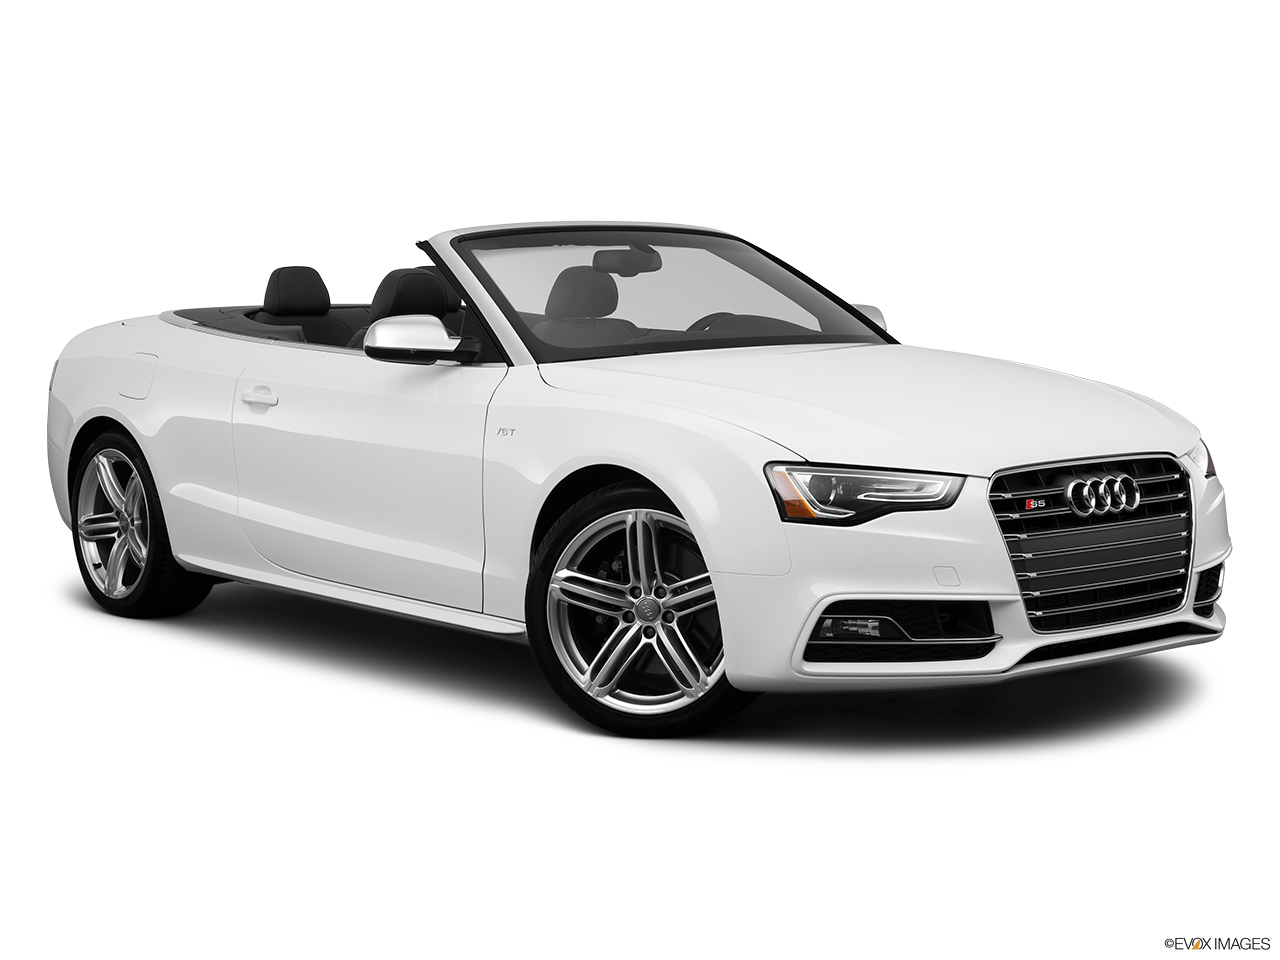 2015 audi s5 cabriolet premium plus. Black Bedroom Furniture Sets. Home Design Ideas